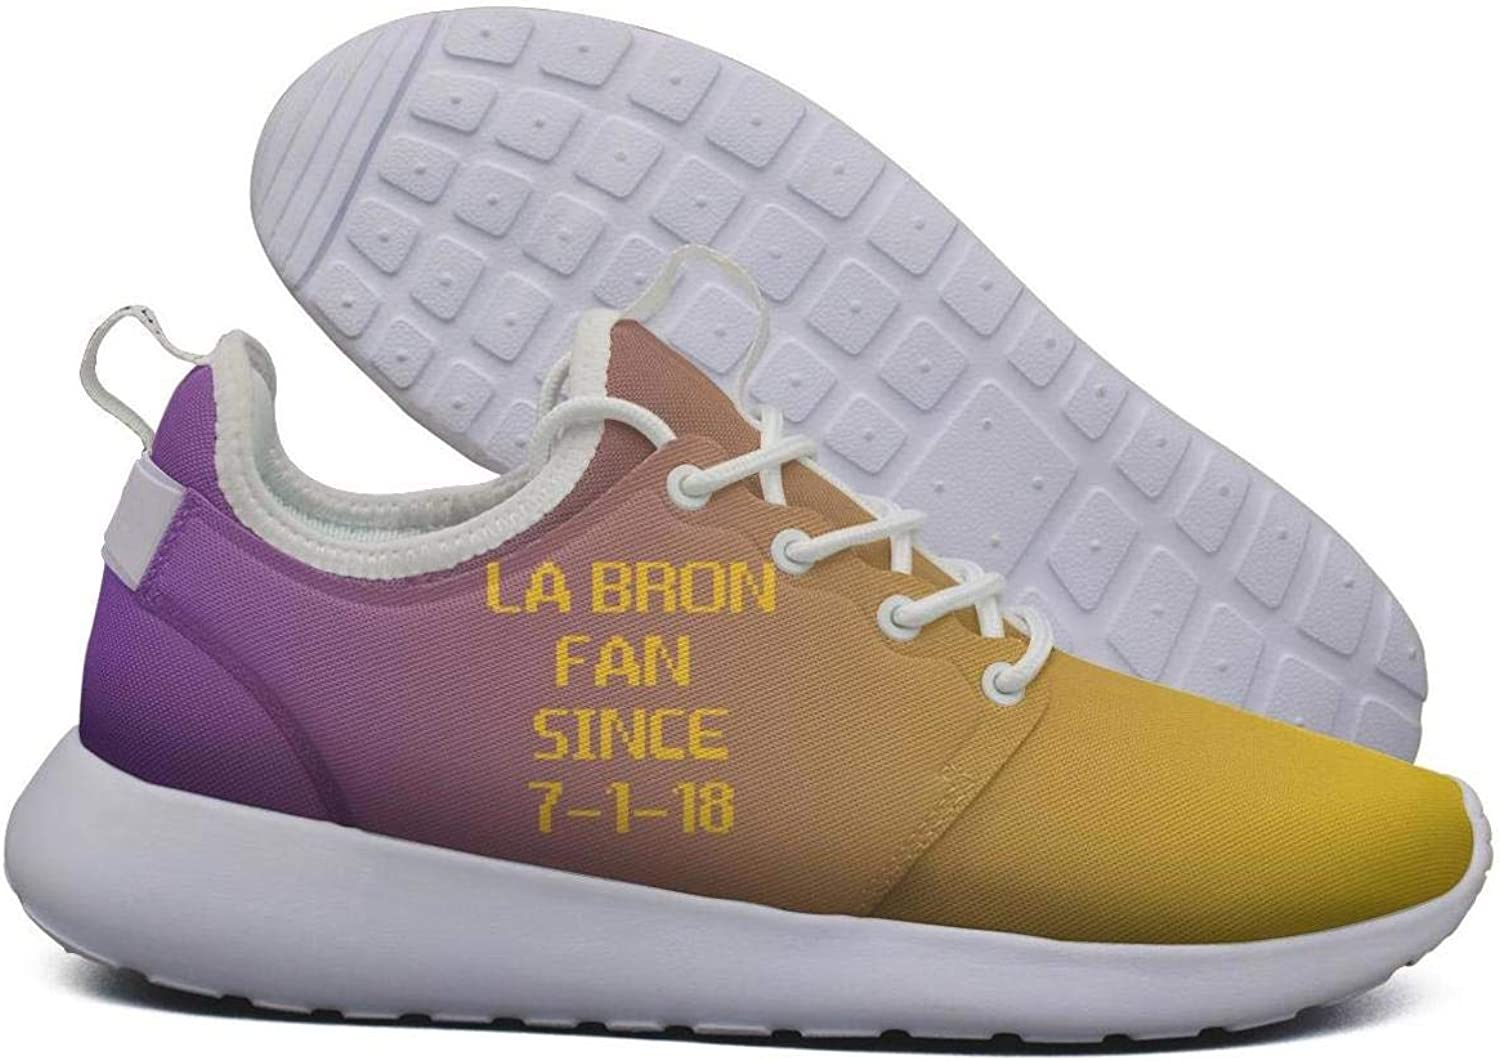 Womens Roshe Two Lightweight LABRON_Fan Since 7-7-18 Basketball Beautiful Fashion Sneakers mesh shoes